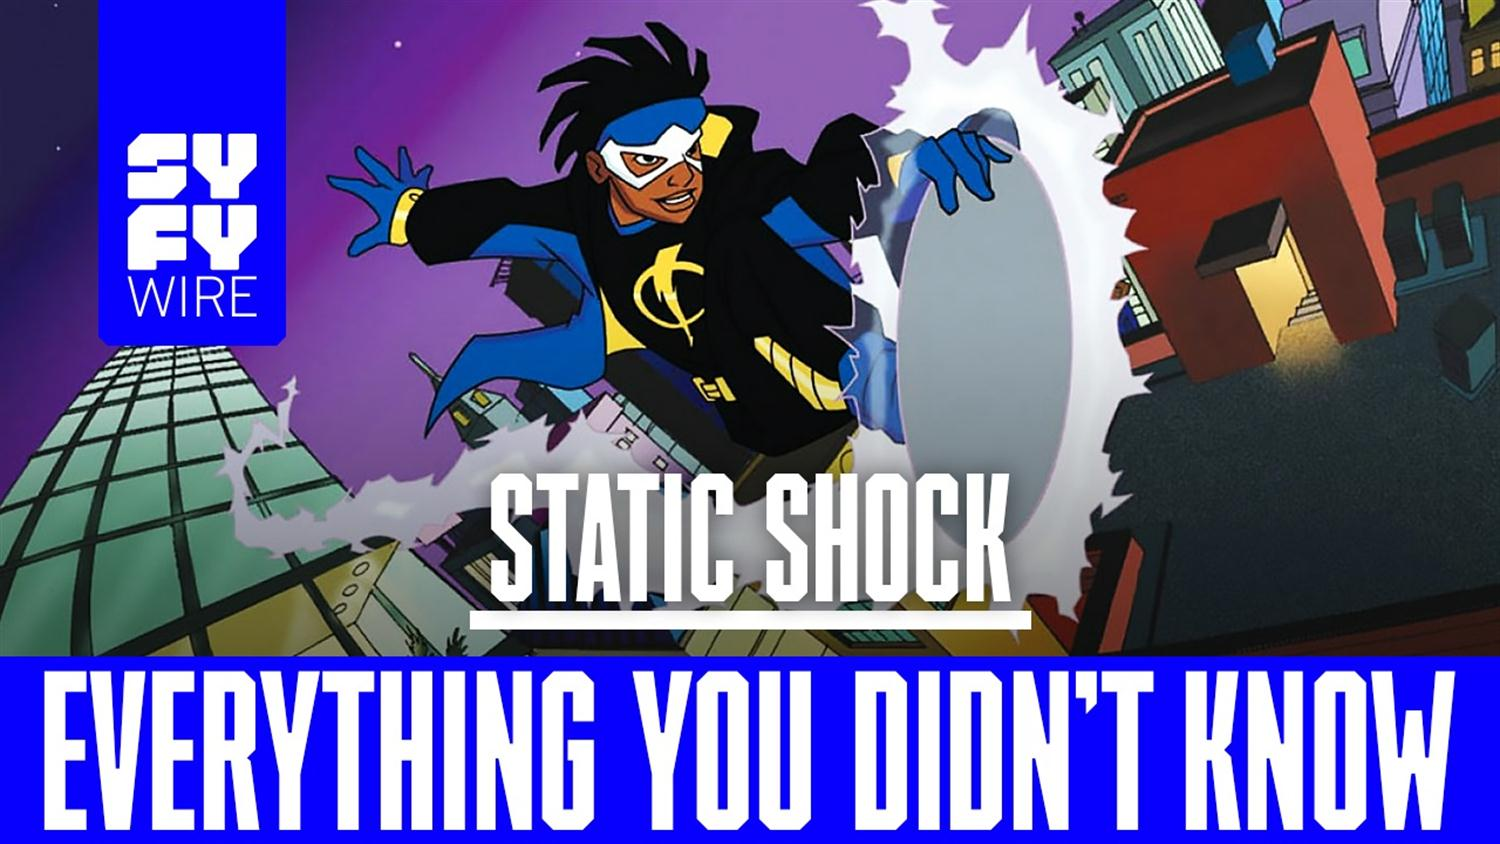 Static Shock: Everything You Didn't Know